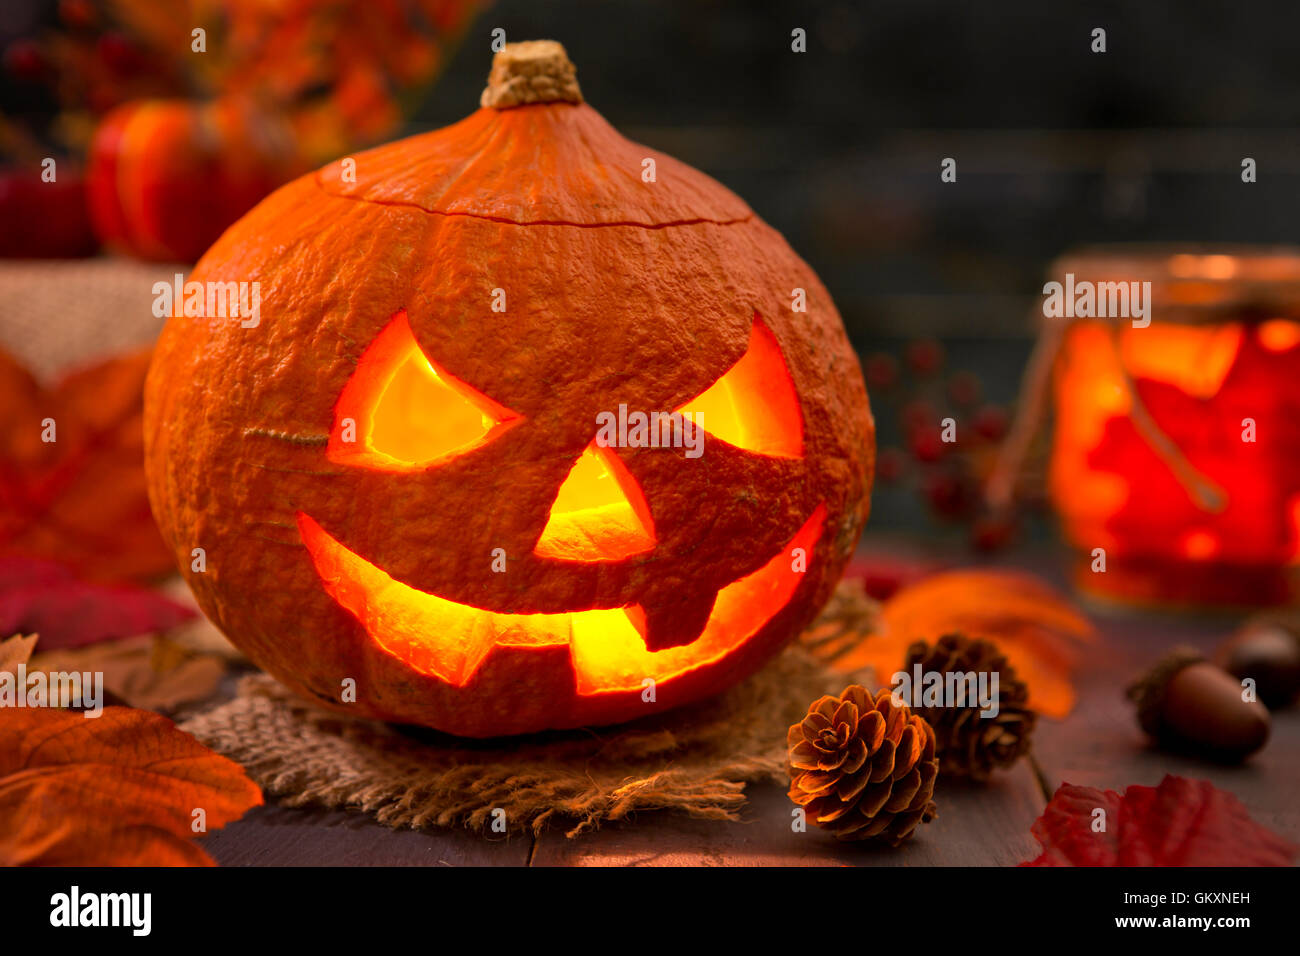 Burning Jack O'Lantern on a rustic table with autumn decorations, darkly lit. Stock Photo